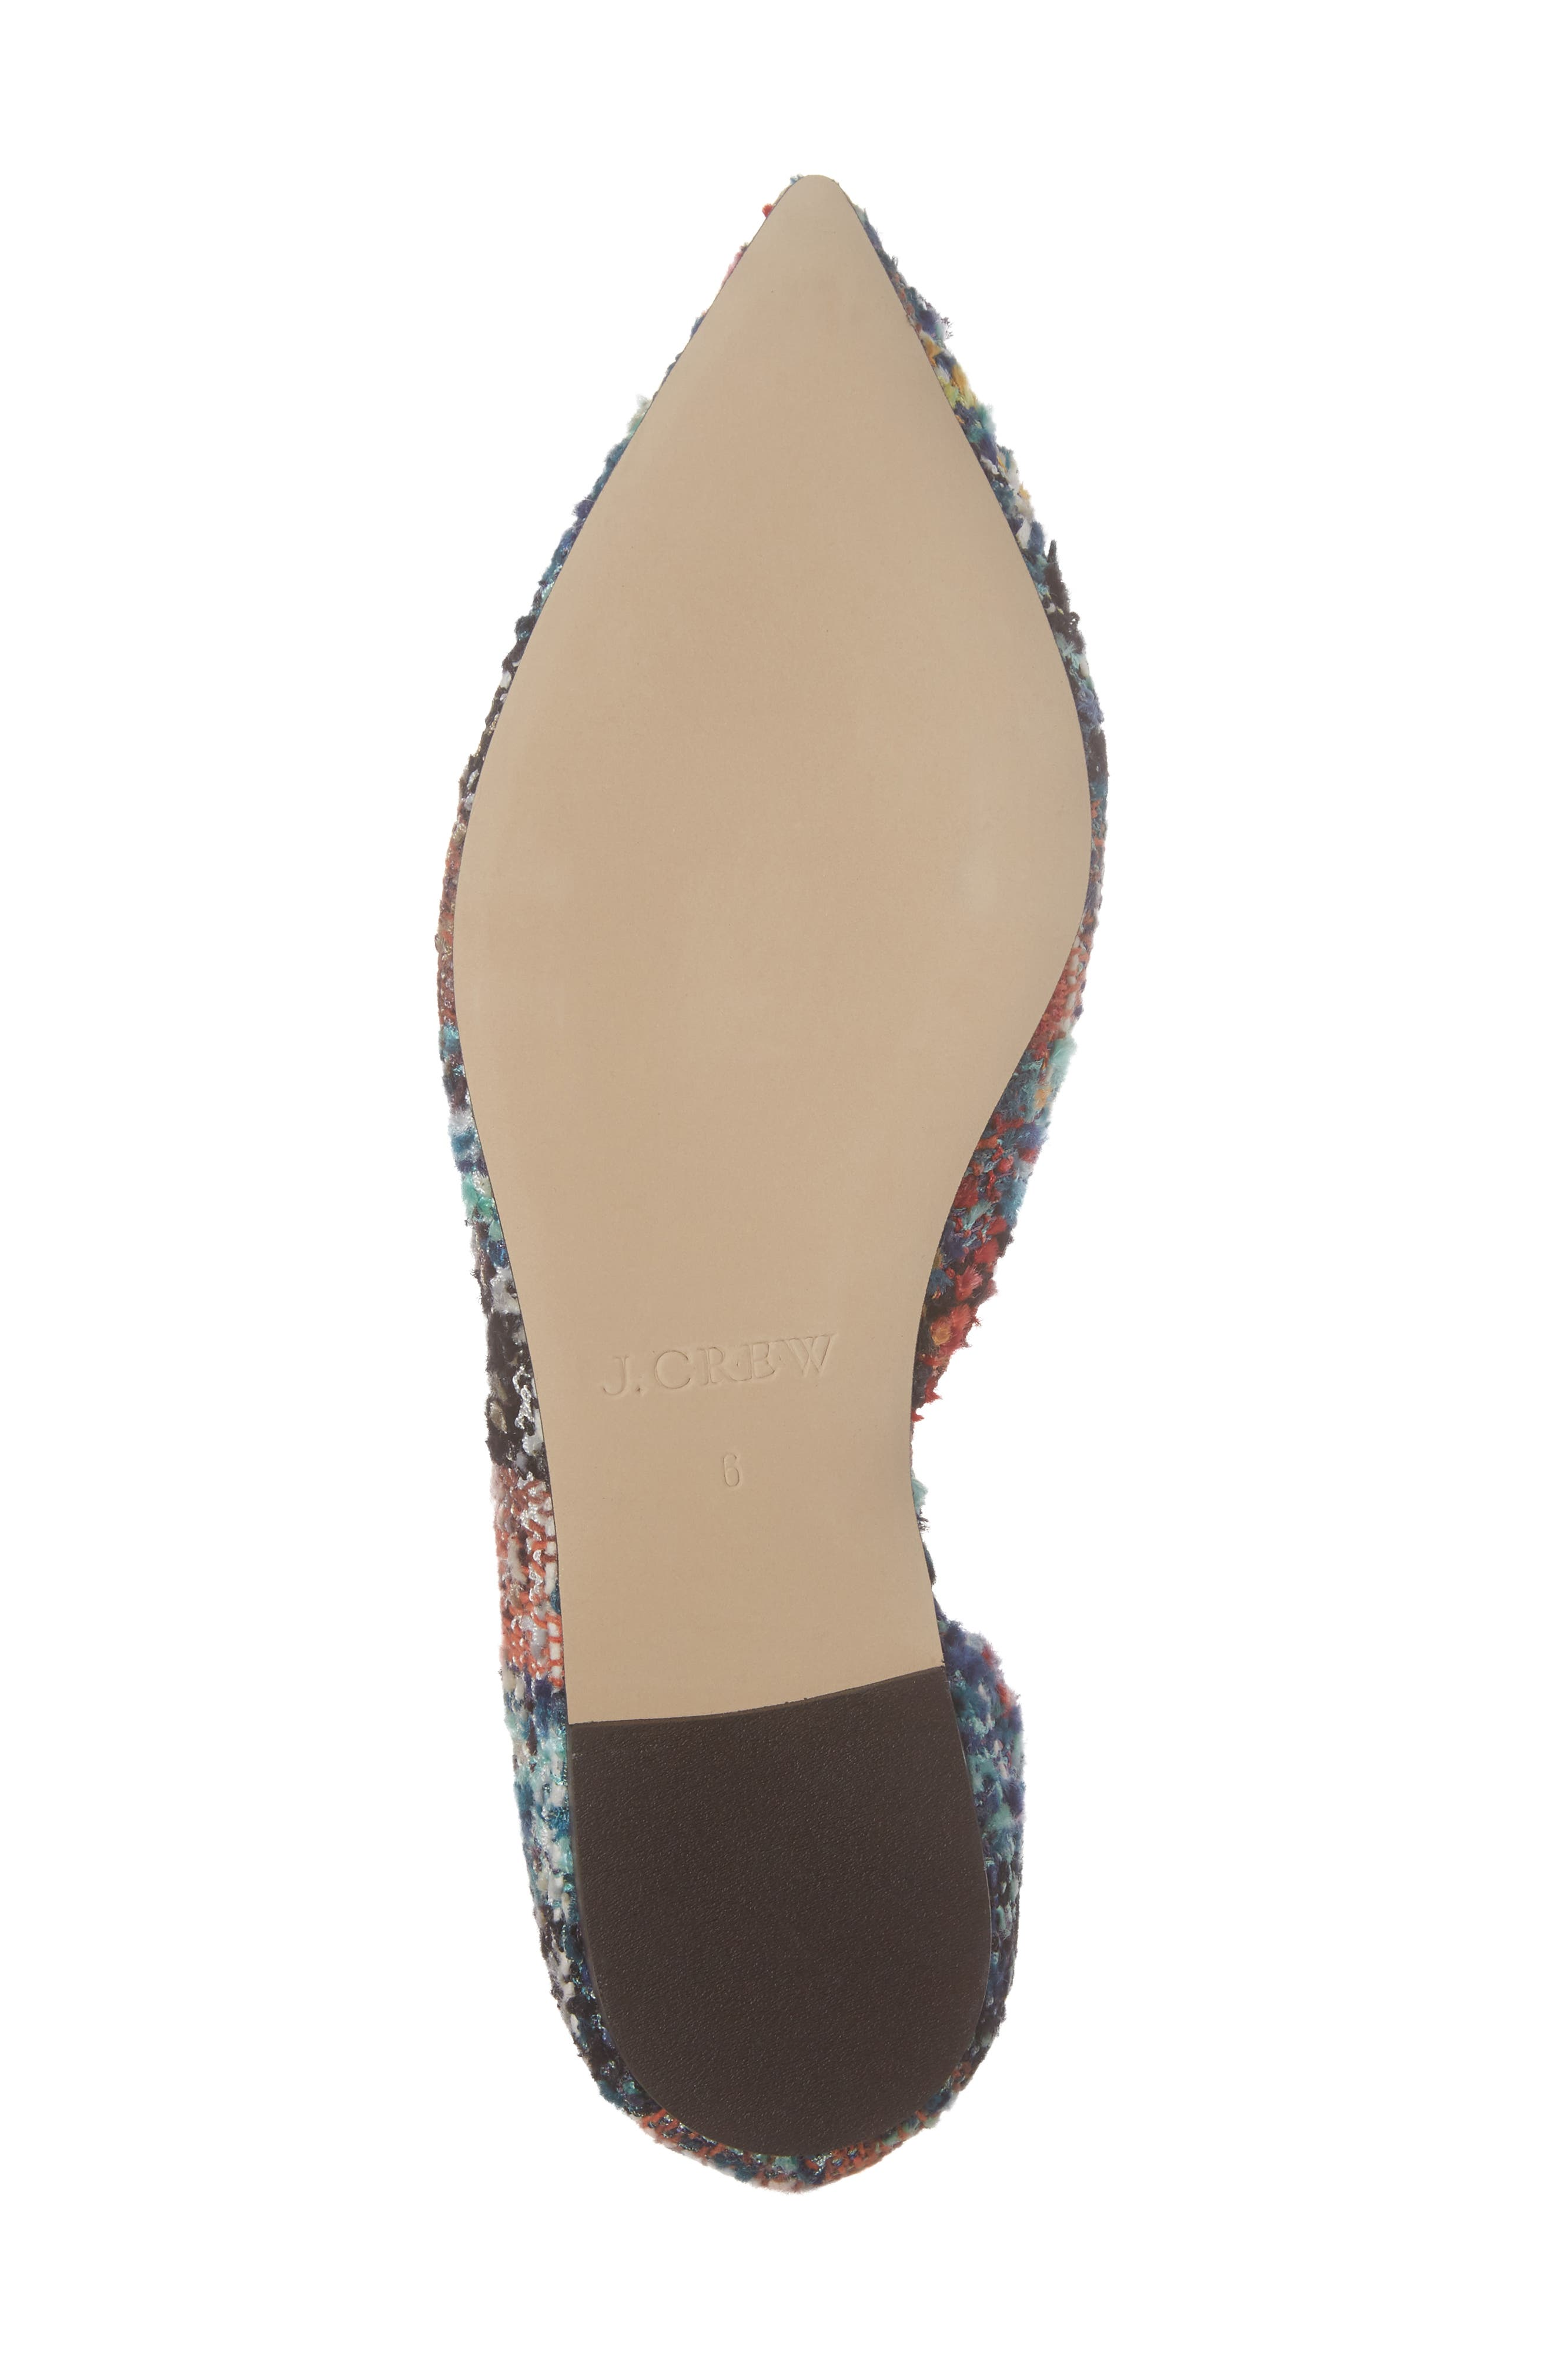 Sadie Pointy Toe Flat,                             Alternate thumbnail 7, color,                             Sundrenched Spearmint Fabric